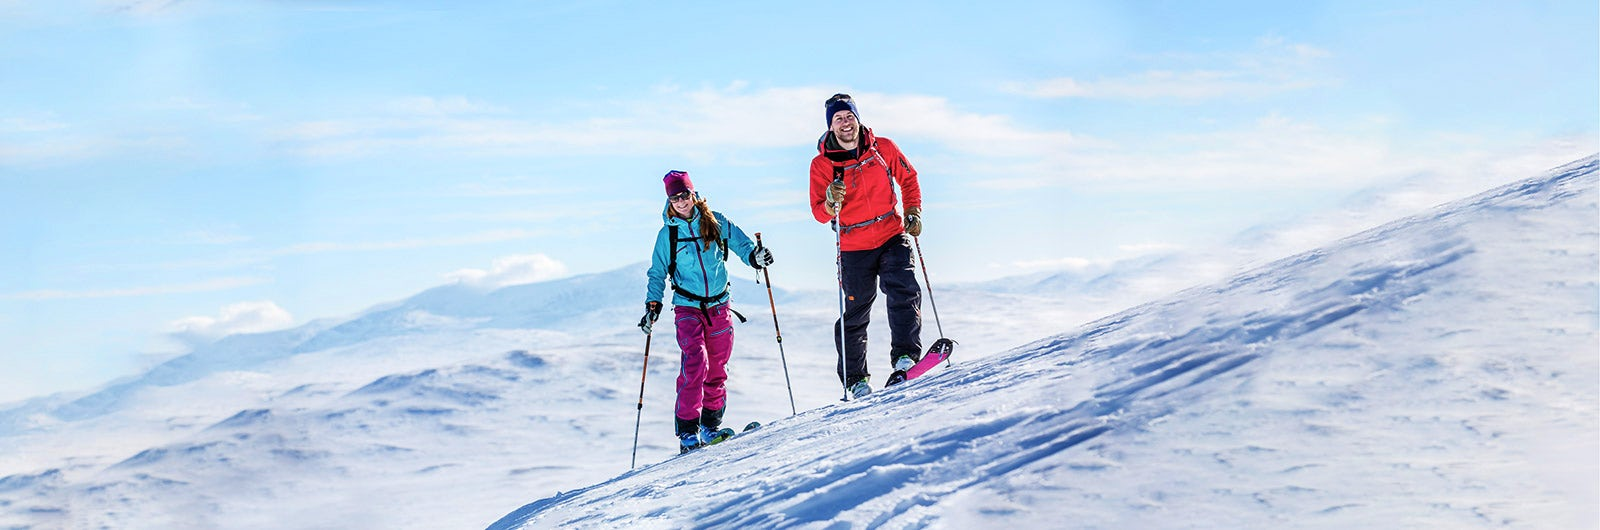 Couple summit skiing